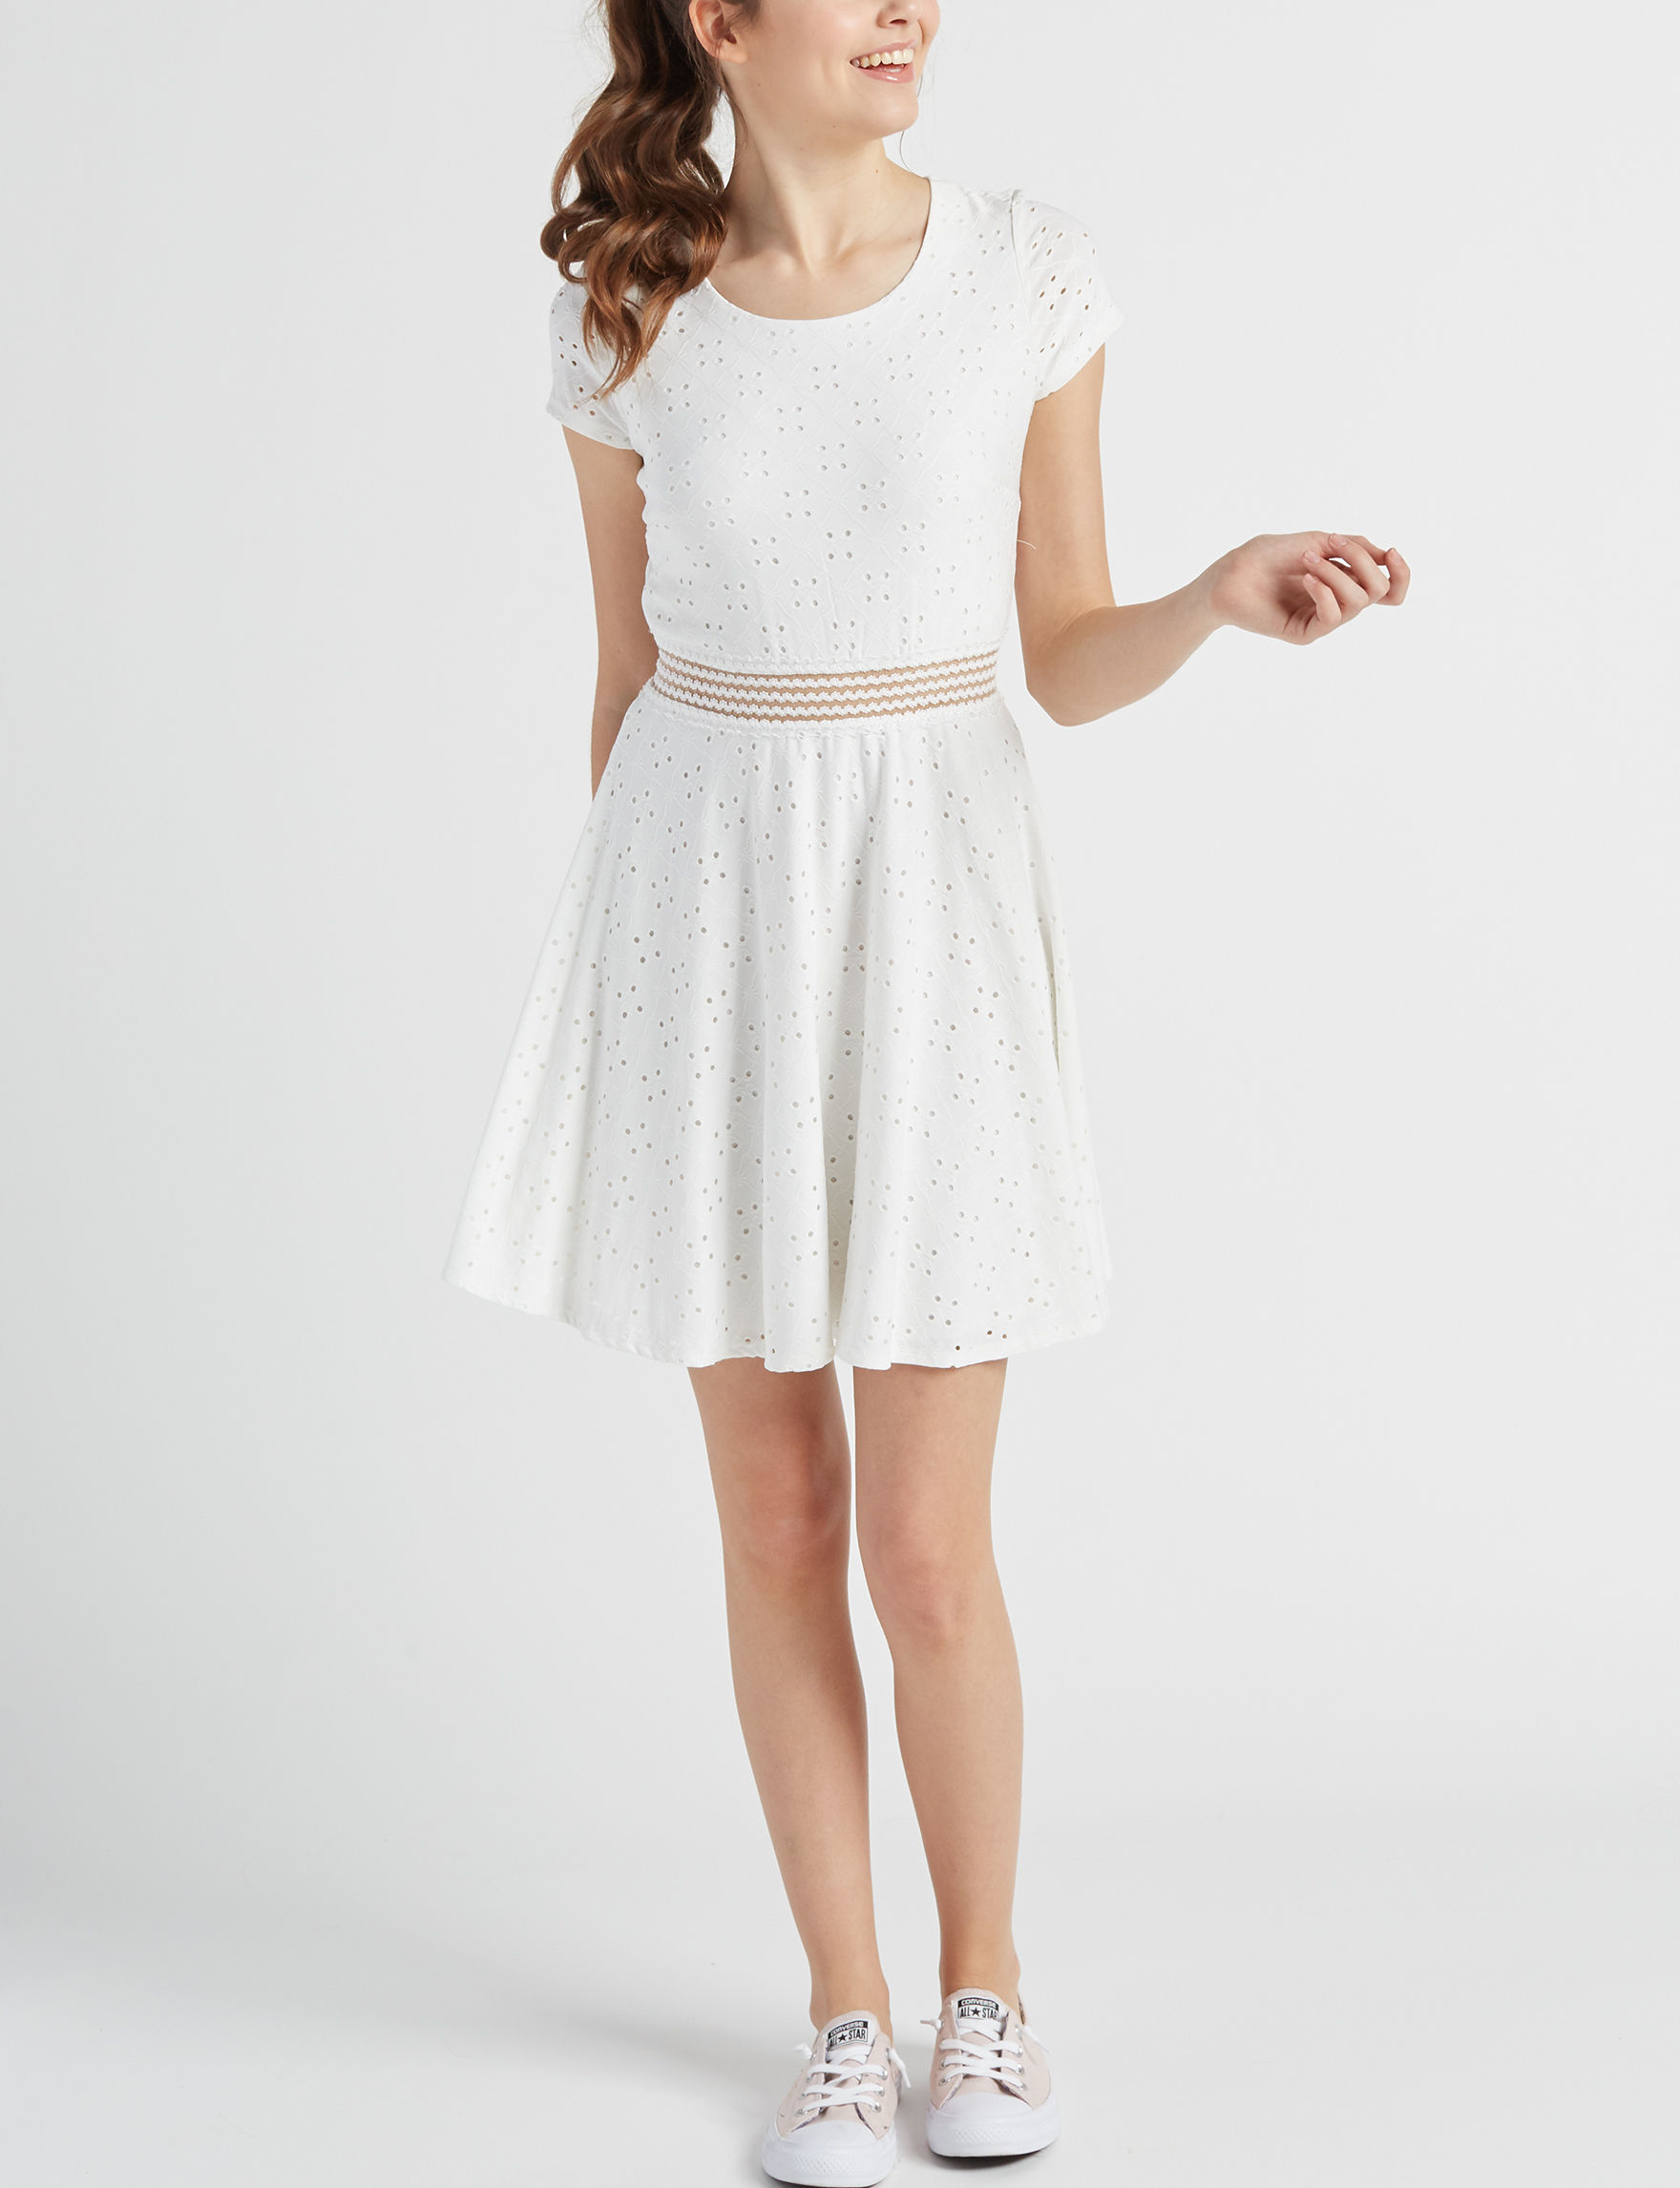 Sequin Hearts White Cocktail & Party Evening & Formal Fit & Flare Dresses